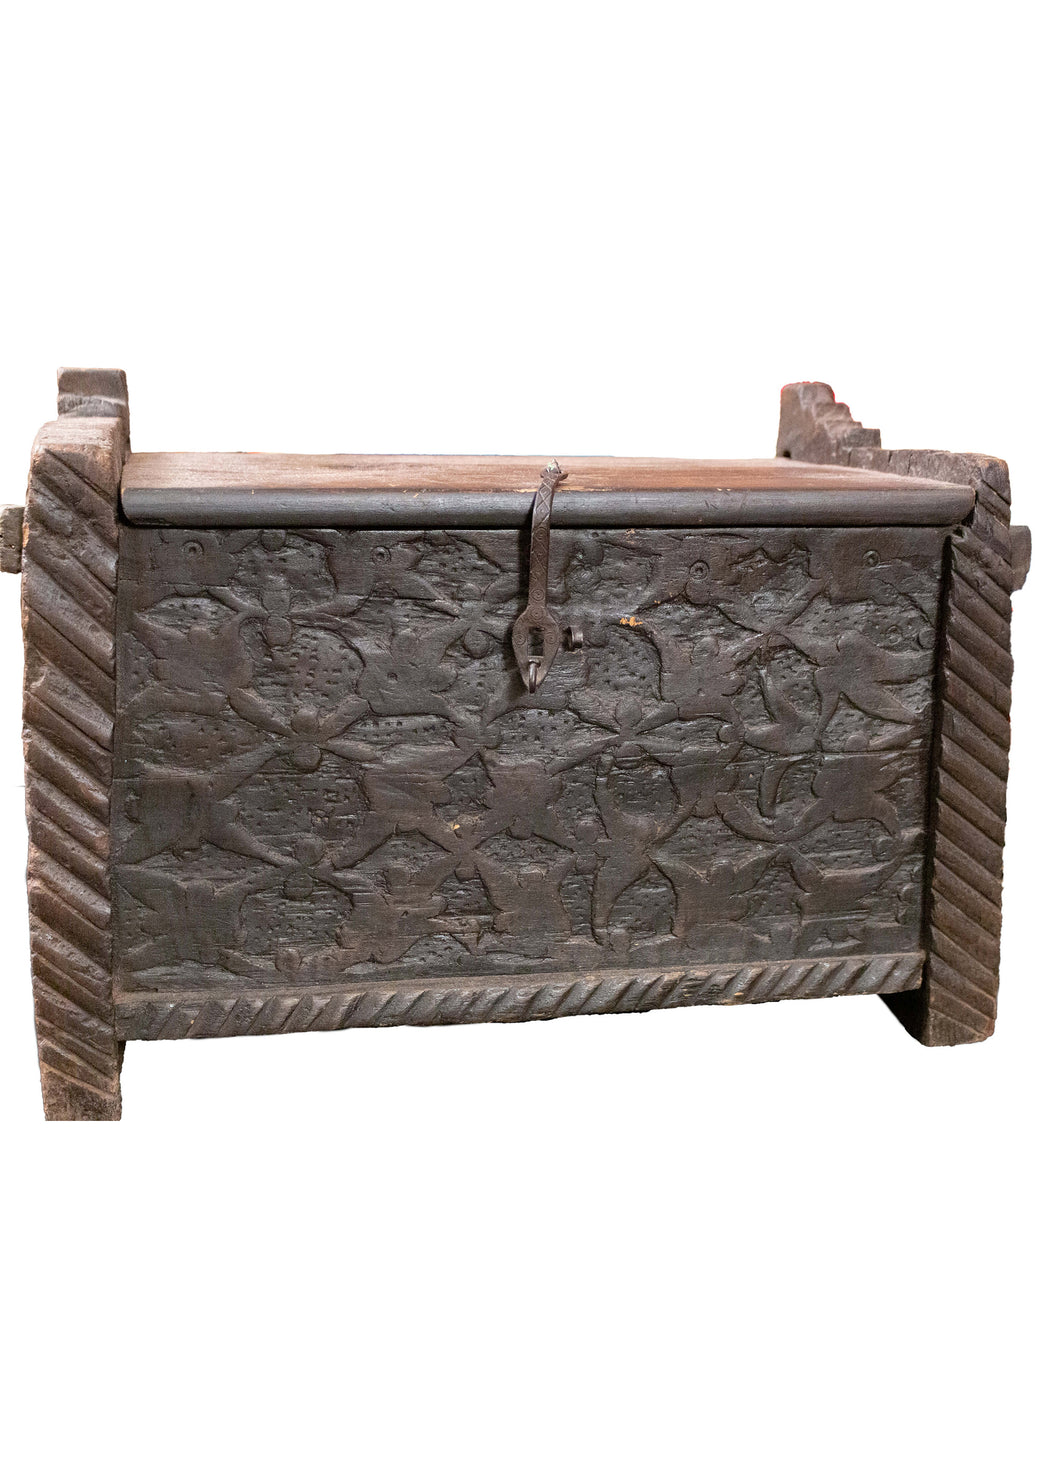 Vintage Swat Valley hand-carved wooden chest with a soft floral design and plain back and sides. In very good condition.